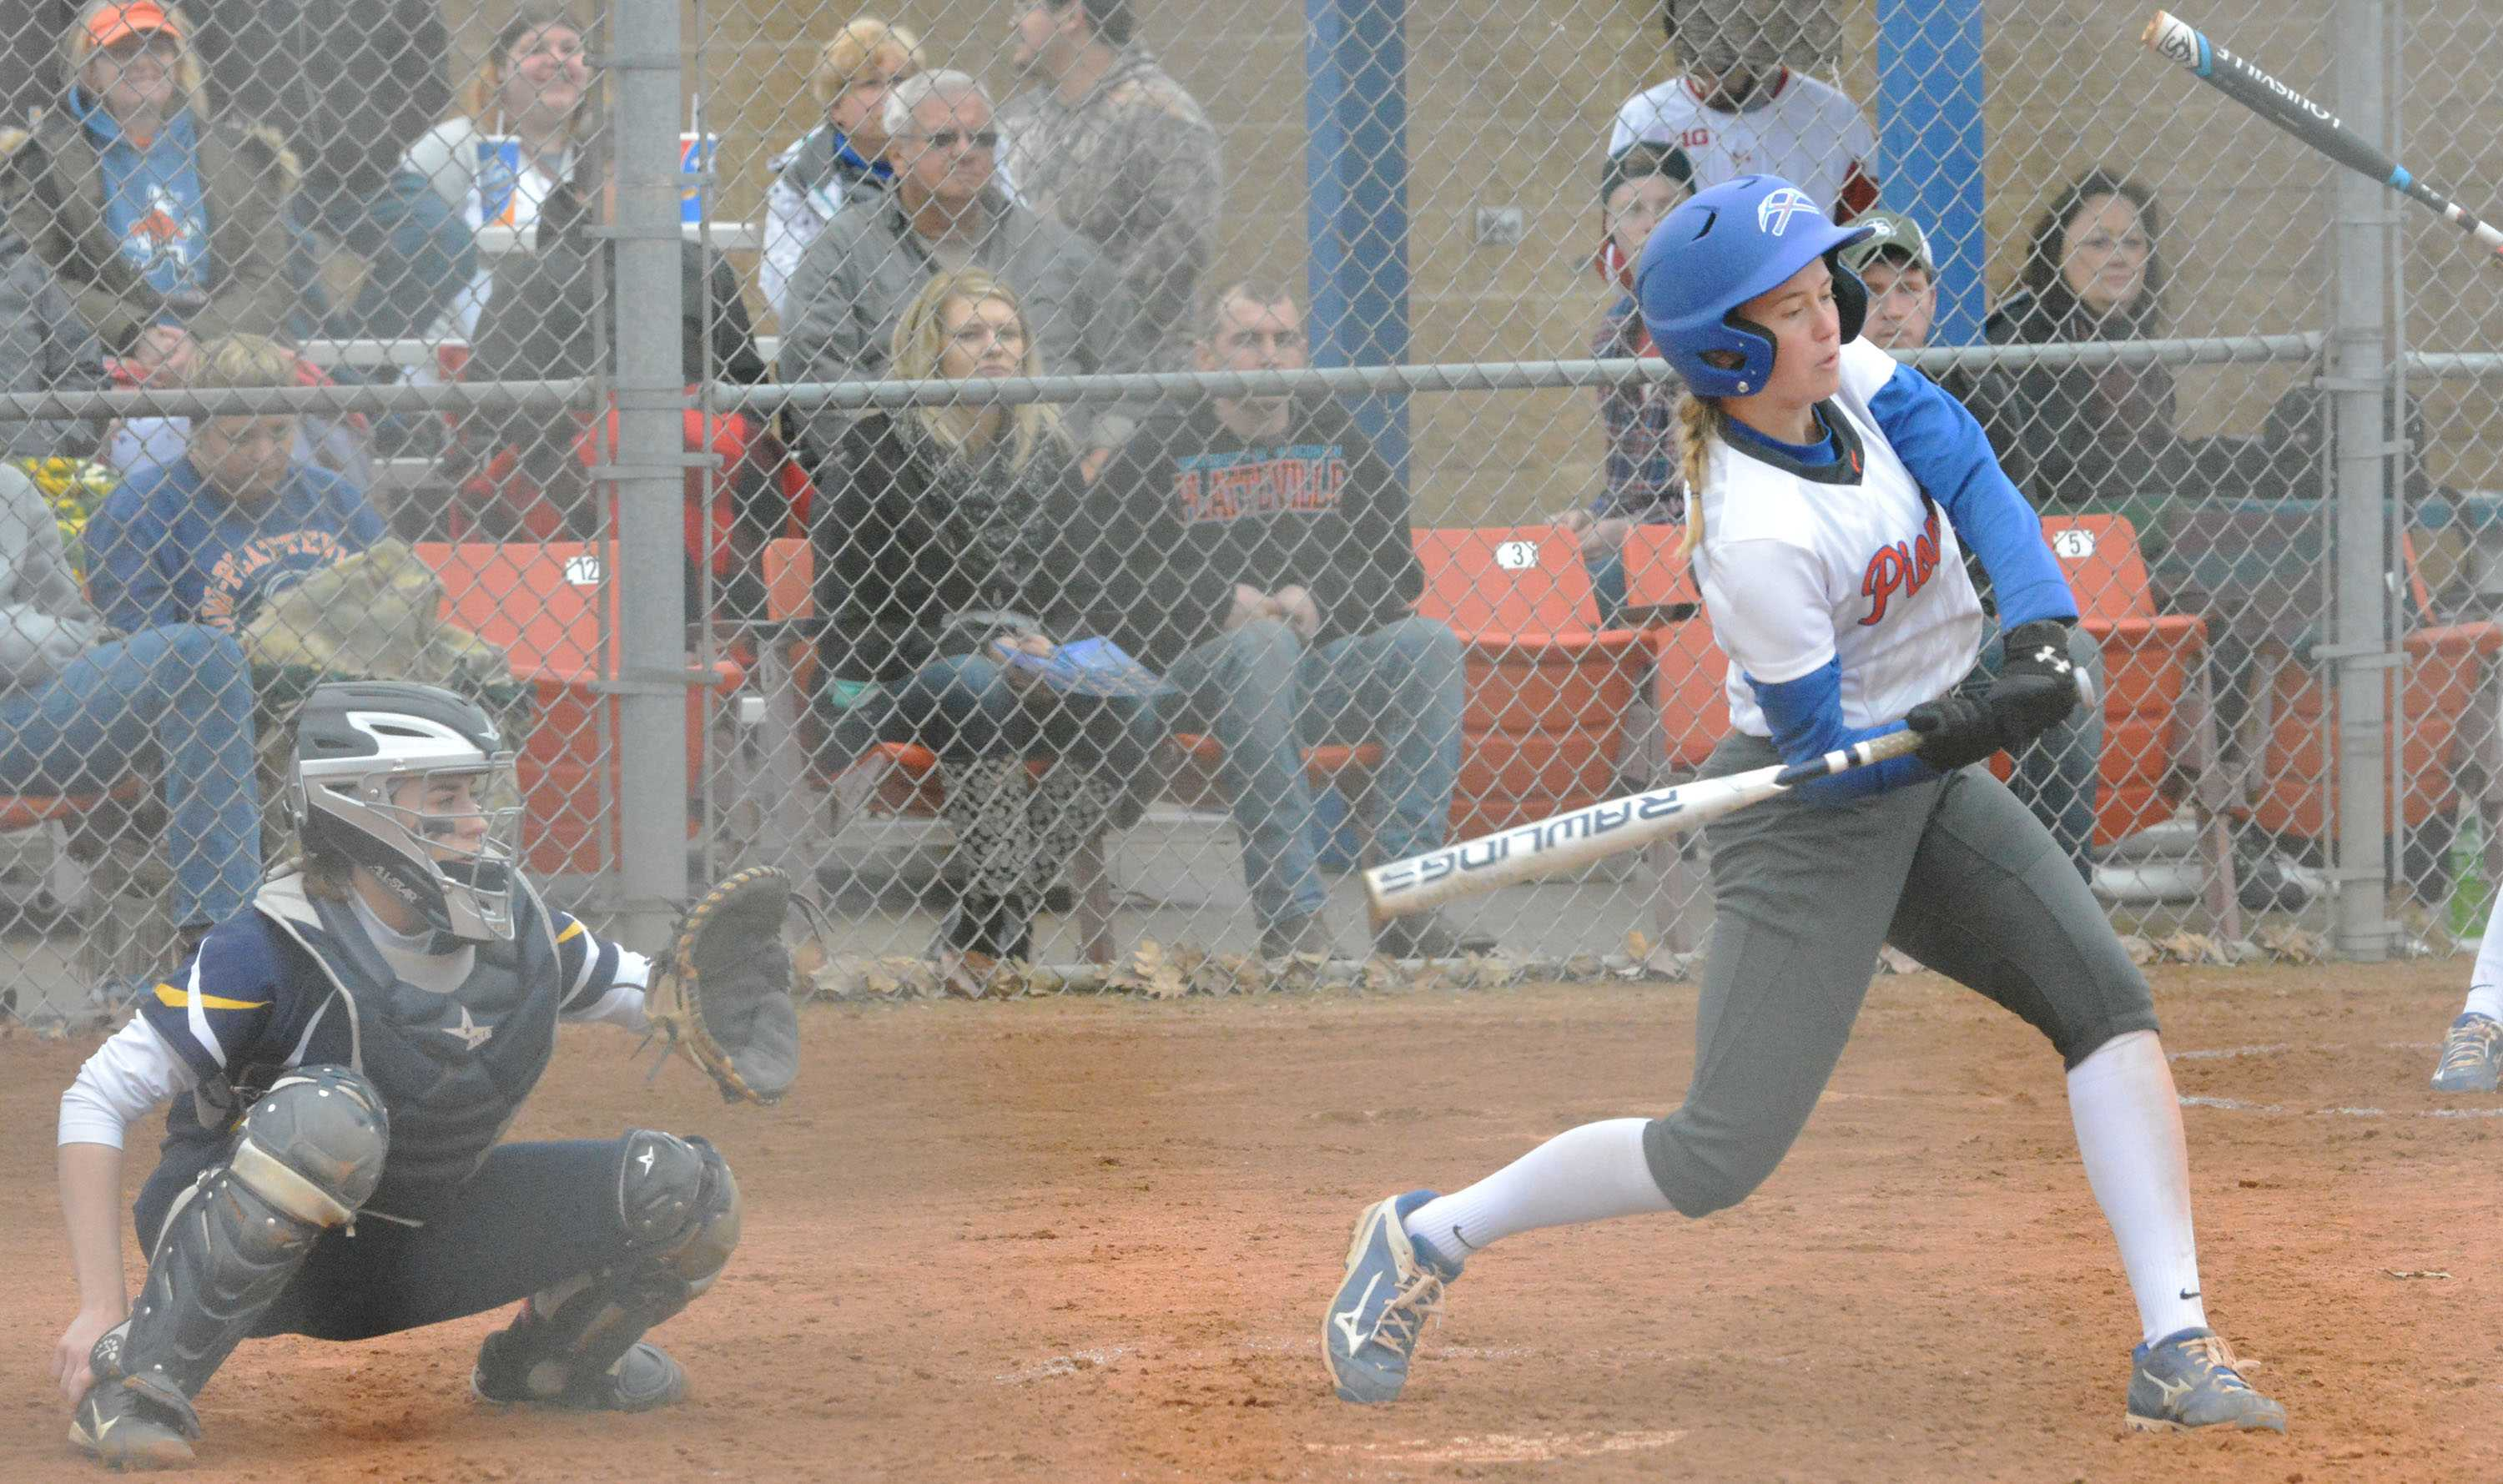 UW-Platteville softball player takes a swing against Beloit College while another teammate prepares behind her.